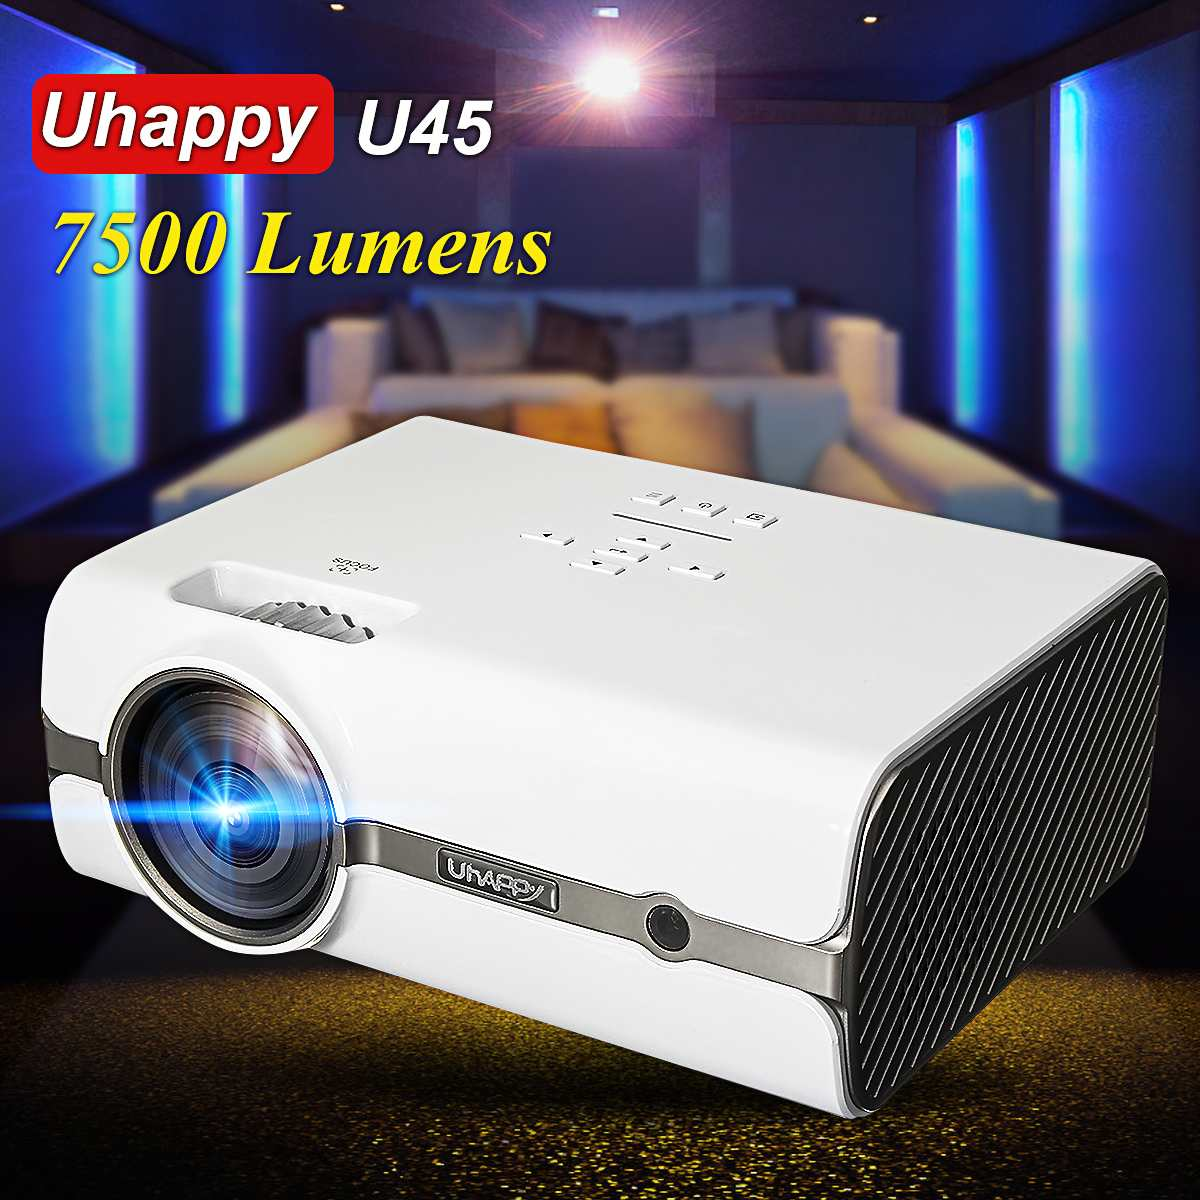 HD 1080P Portable Mini Projector 7500 Home Theater with Internal Cinema USB TV HDMI 3D ProjectorHD 1080P Portable Mini Projector 7500 Home Theater with Internal Cinema USB TV HDMI 3D Projector